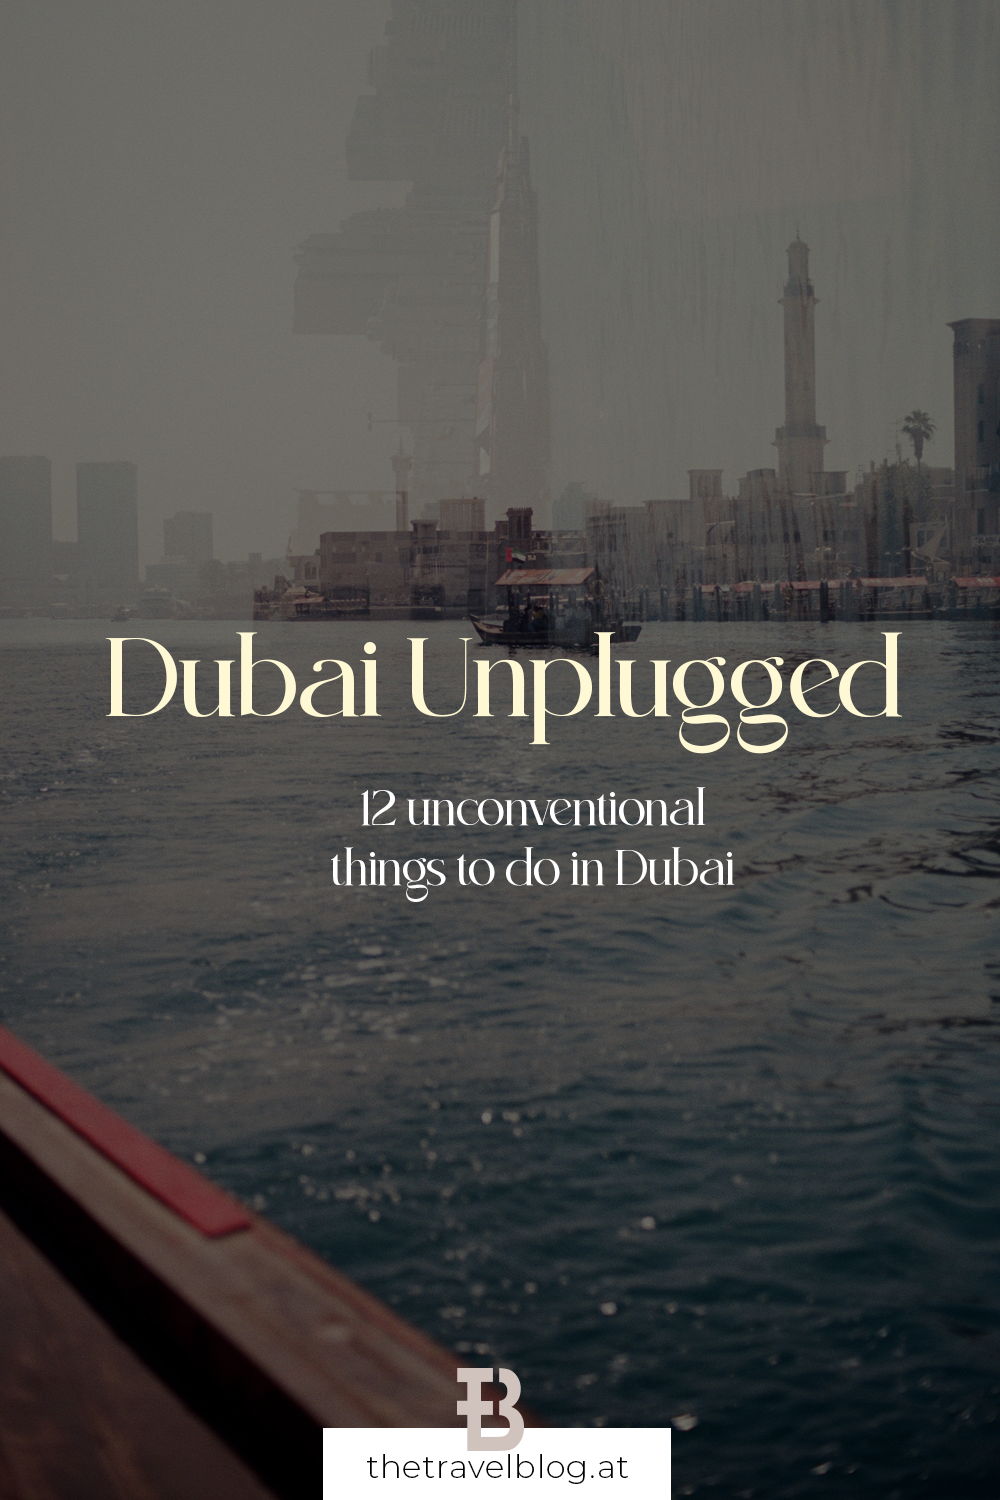 Dubai Unplugged: 12 unconventional things to do in Dubai